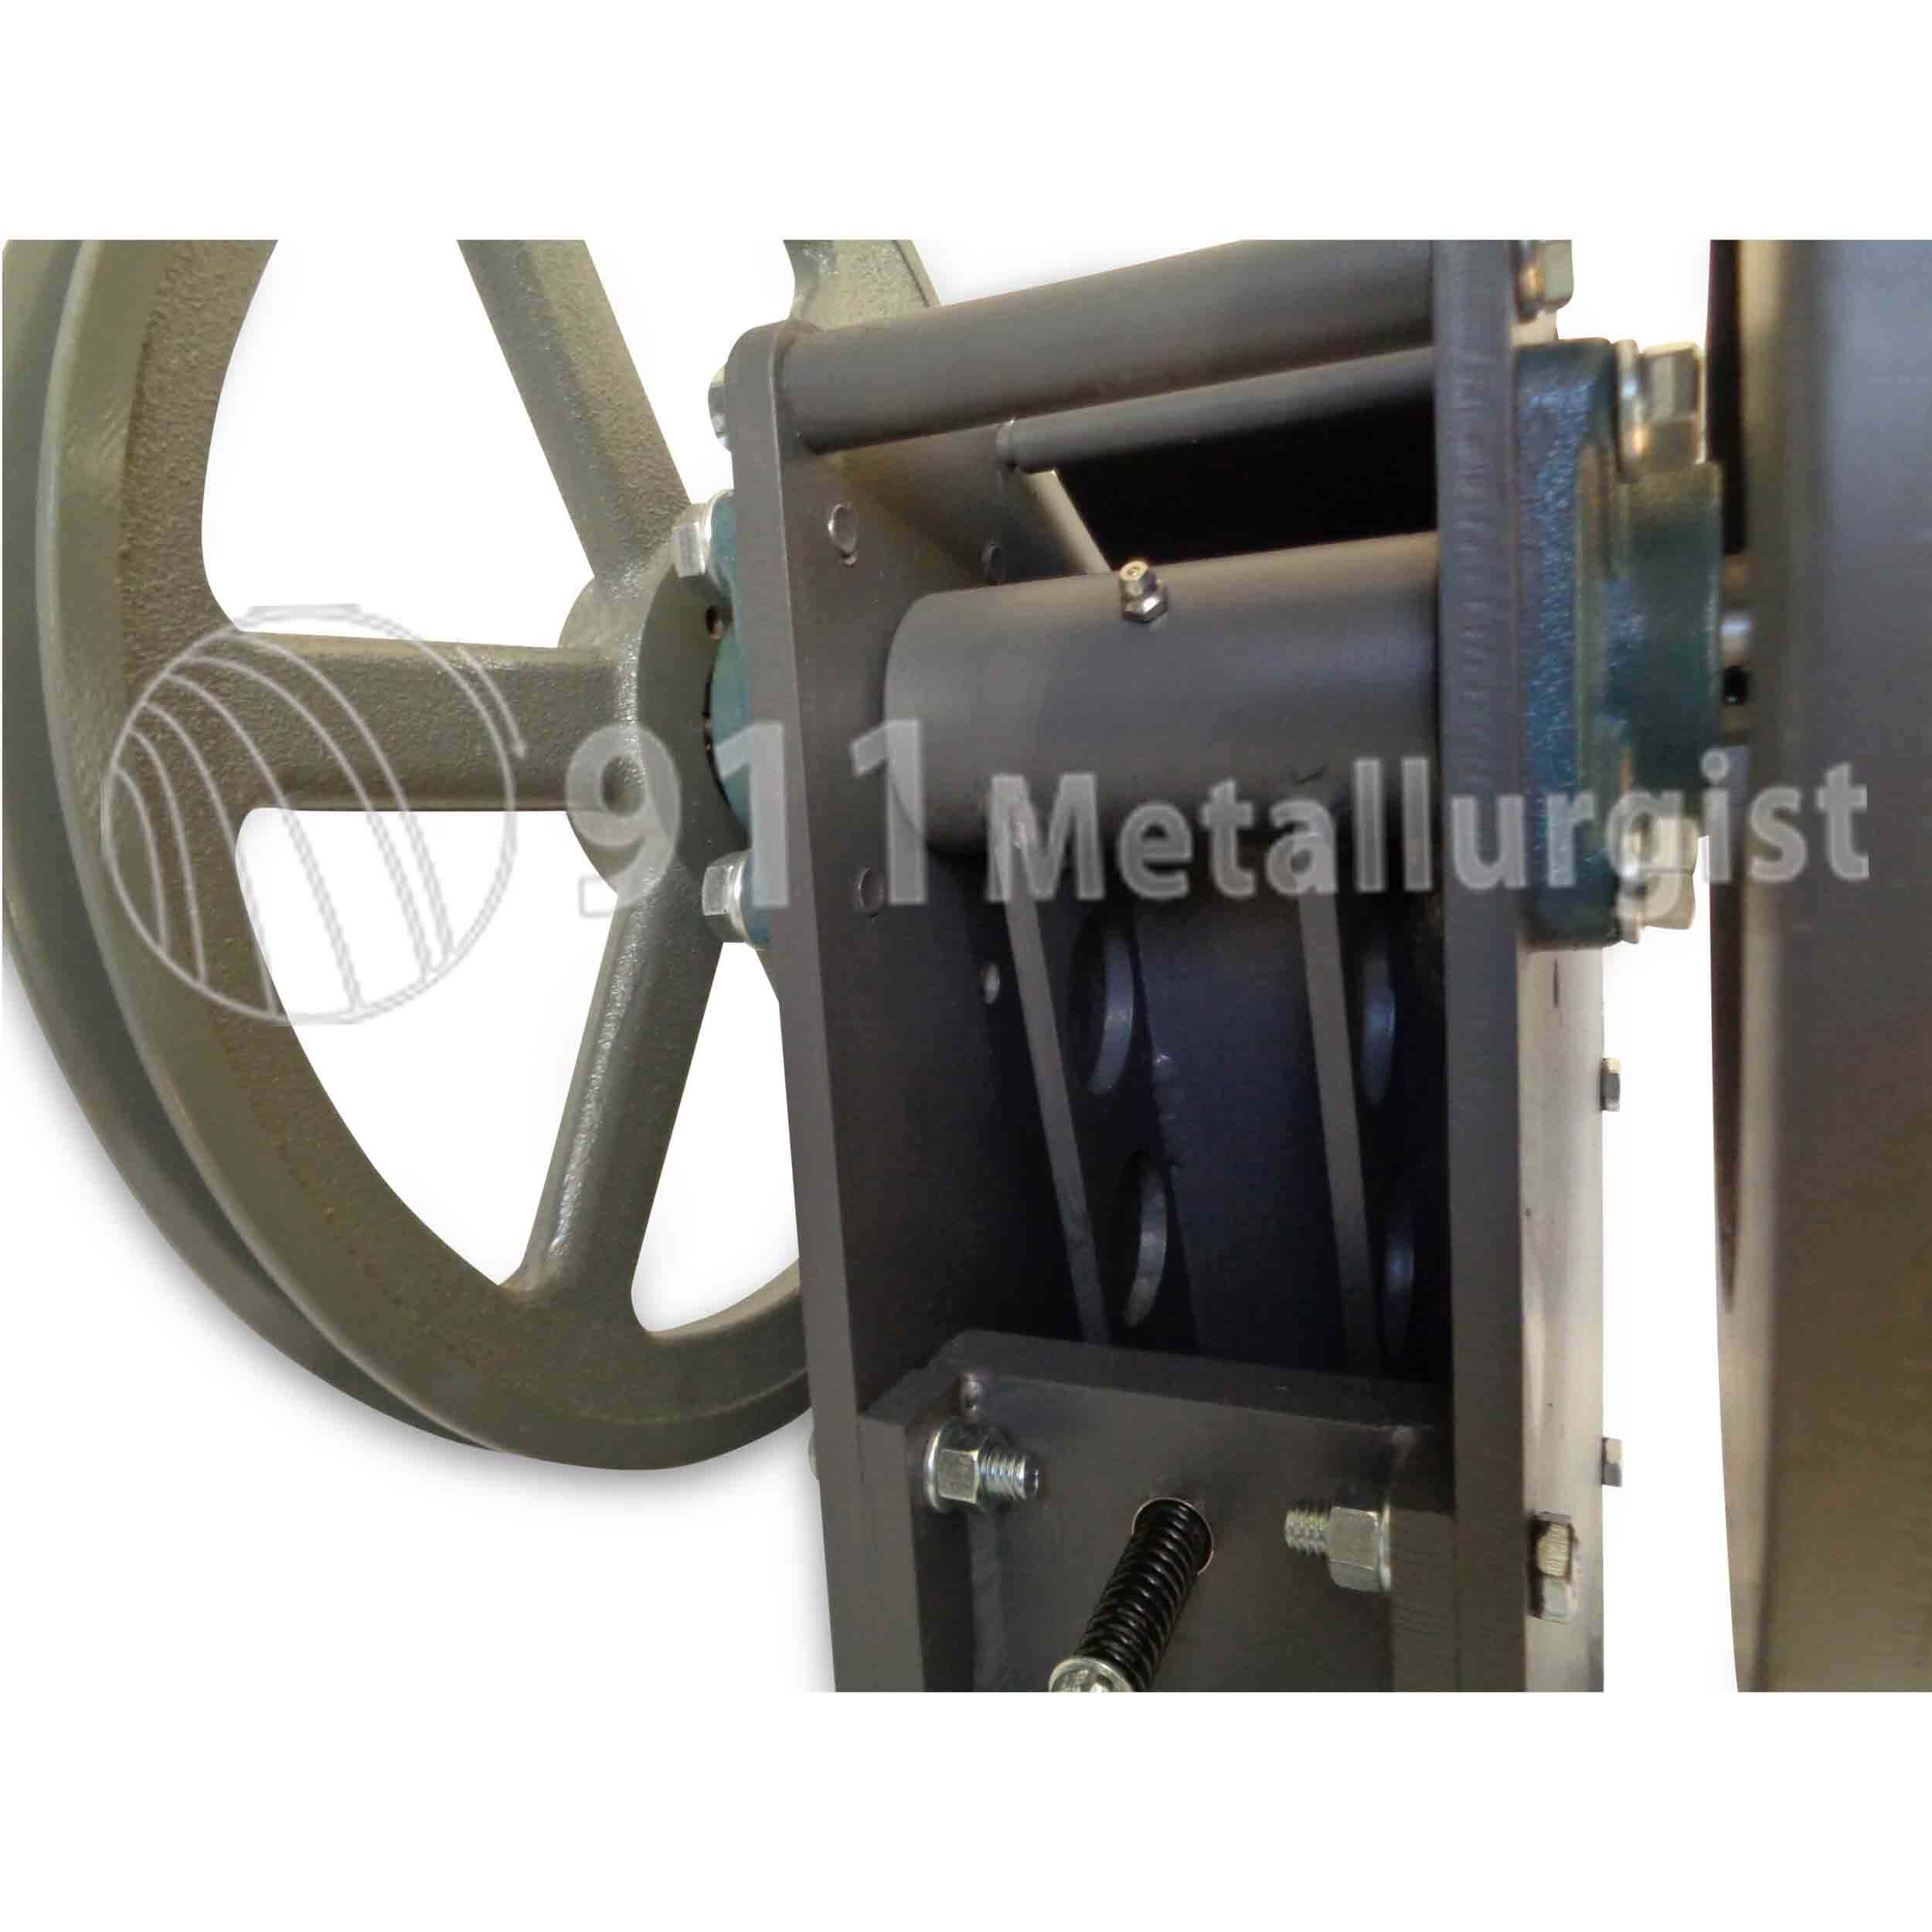 164-jaw-crusher-for-sale